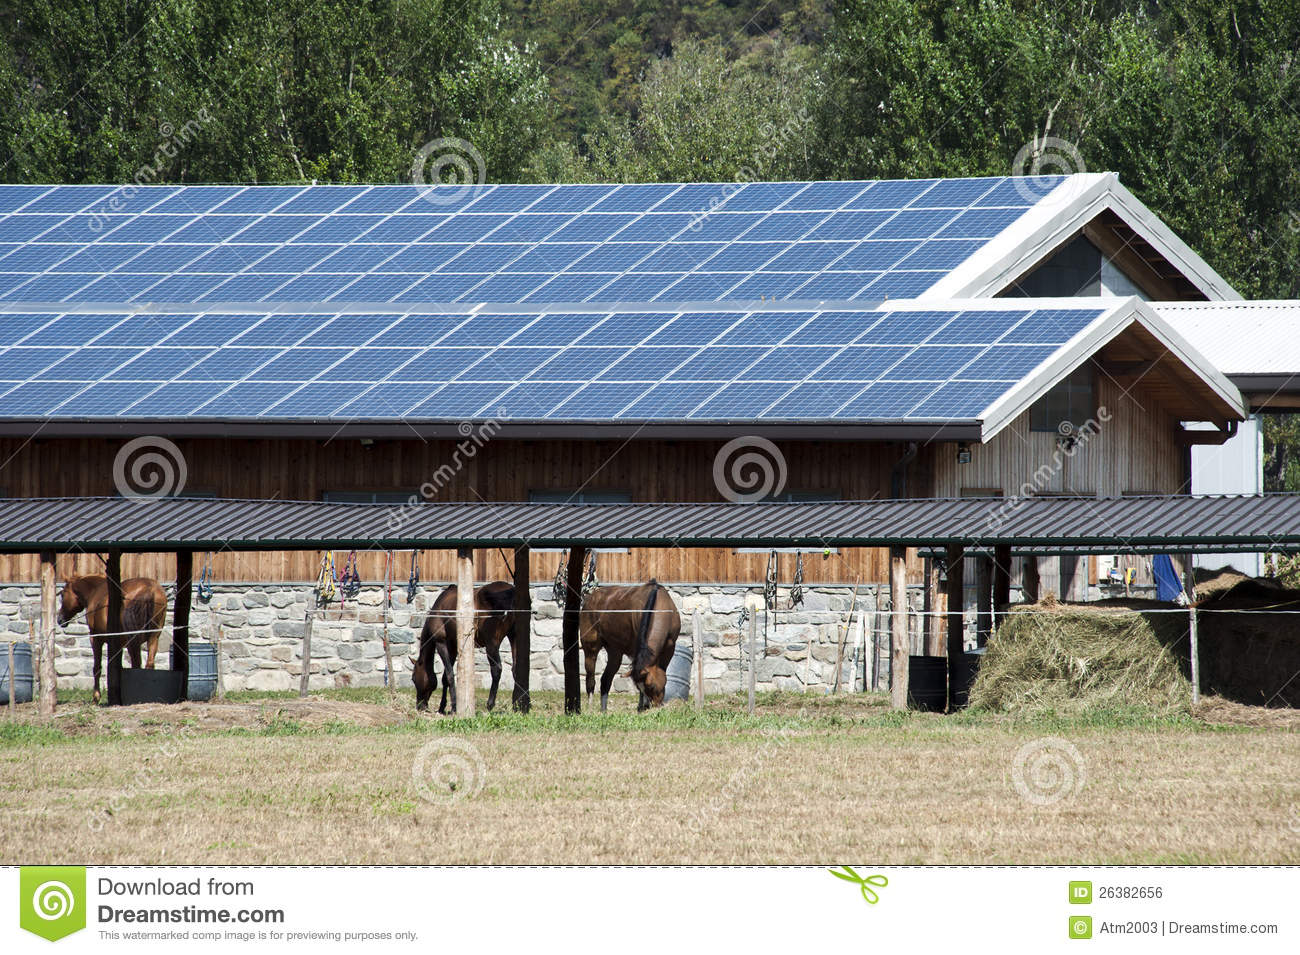 solar-panels-farm-26382656 Panel House Plans on panel art, prefabricated home plans, metal barn homes floor plans, panel architecture, panel electrical, panel wallpaper, panel house construction, panel trailer plans, panel cabinets, log home plans, panel doors, panel homes,